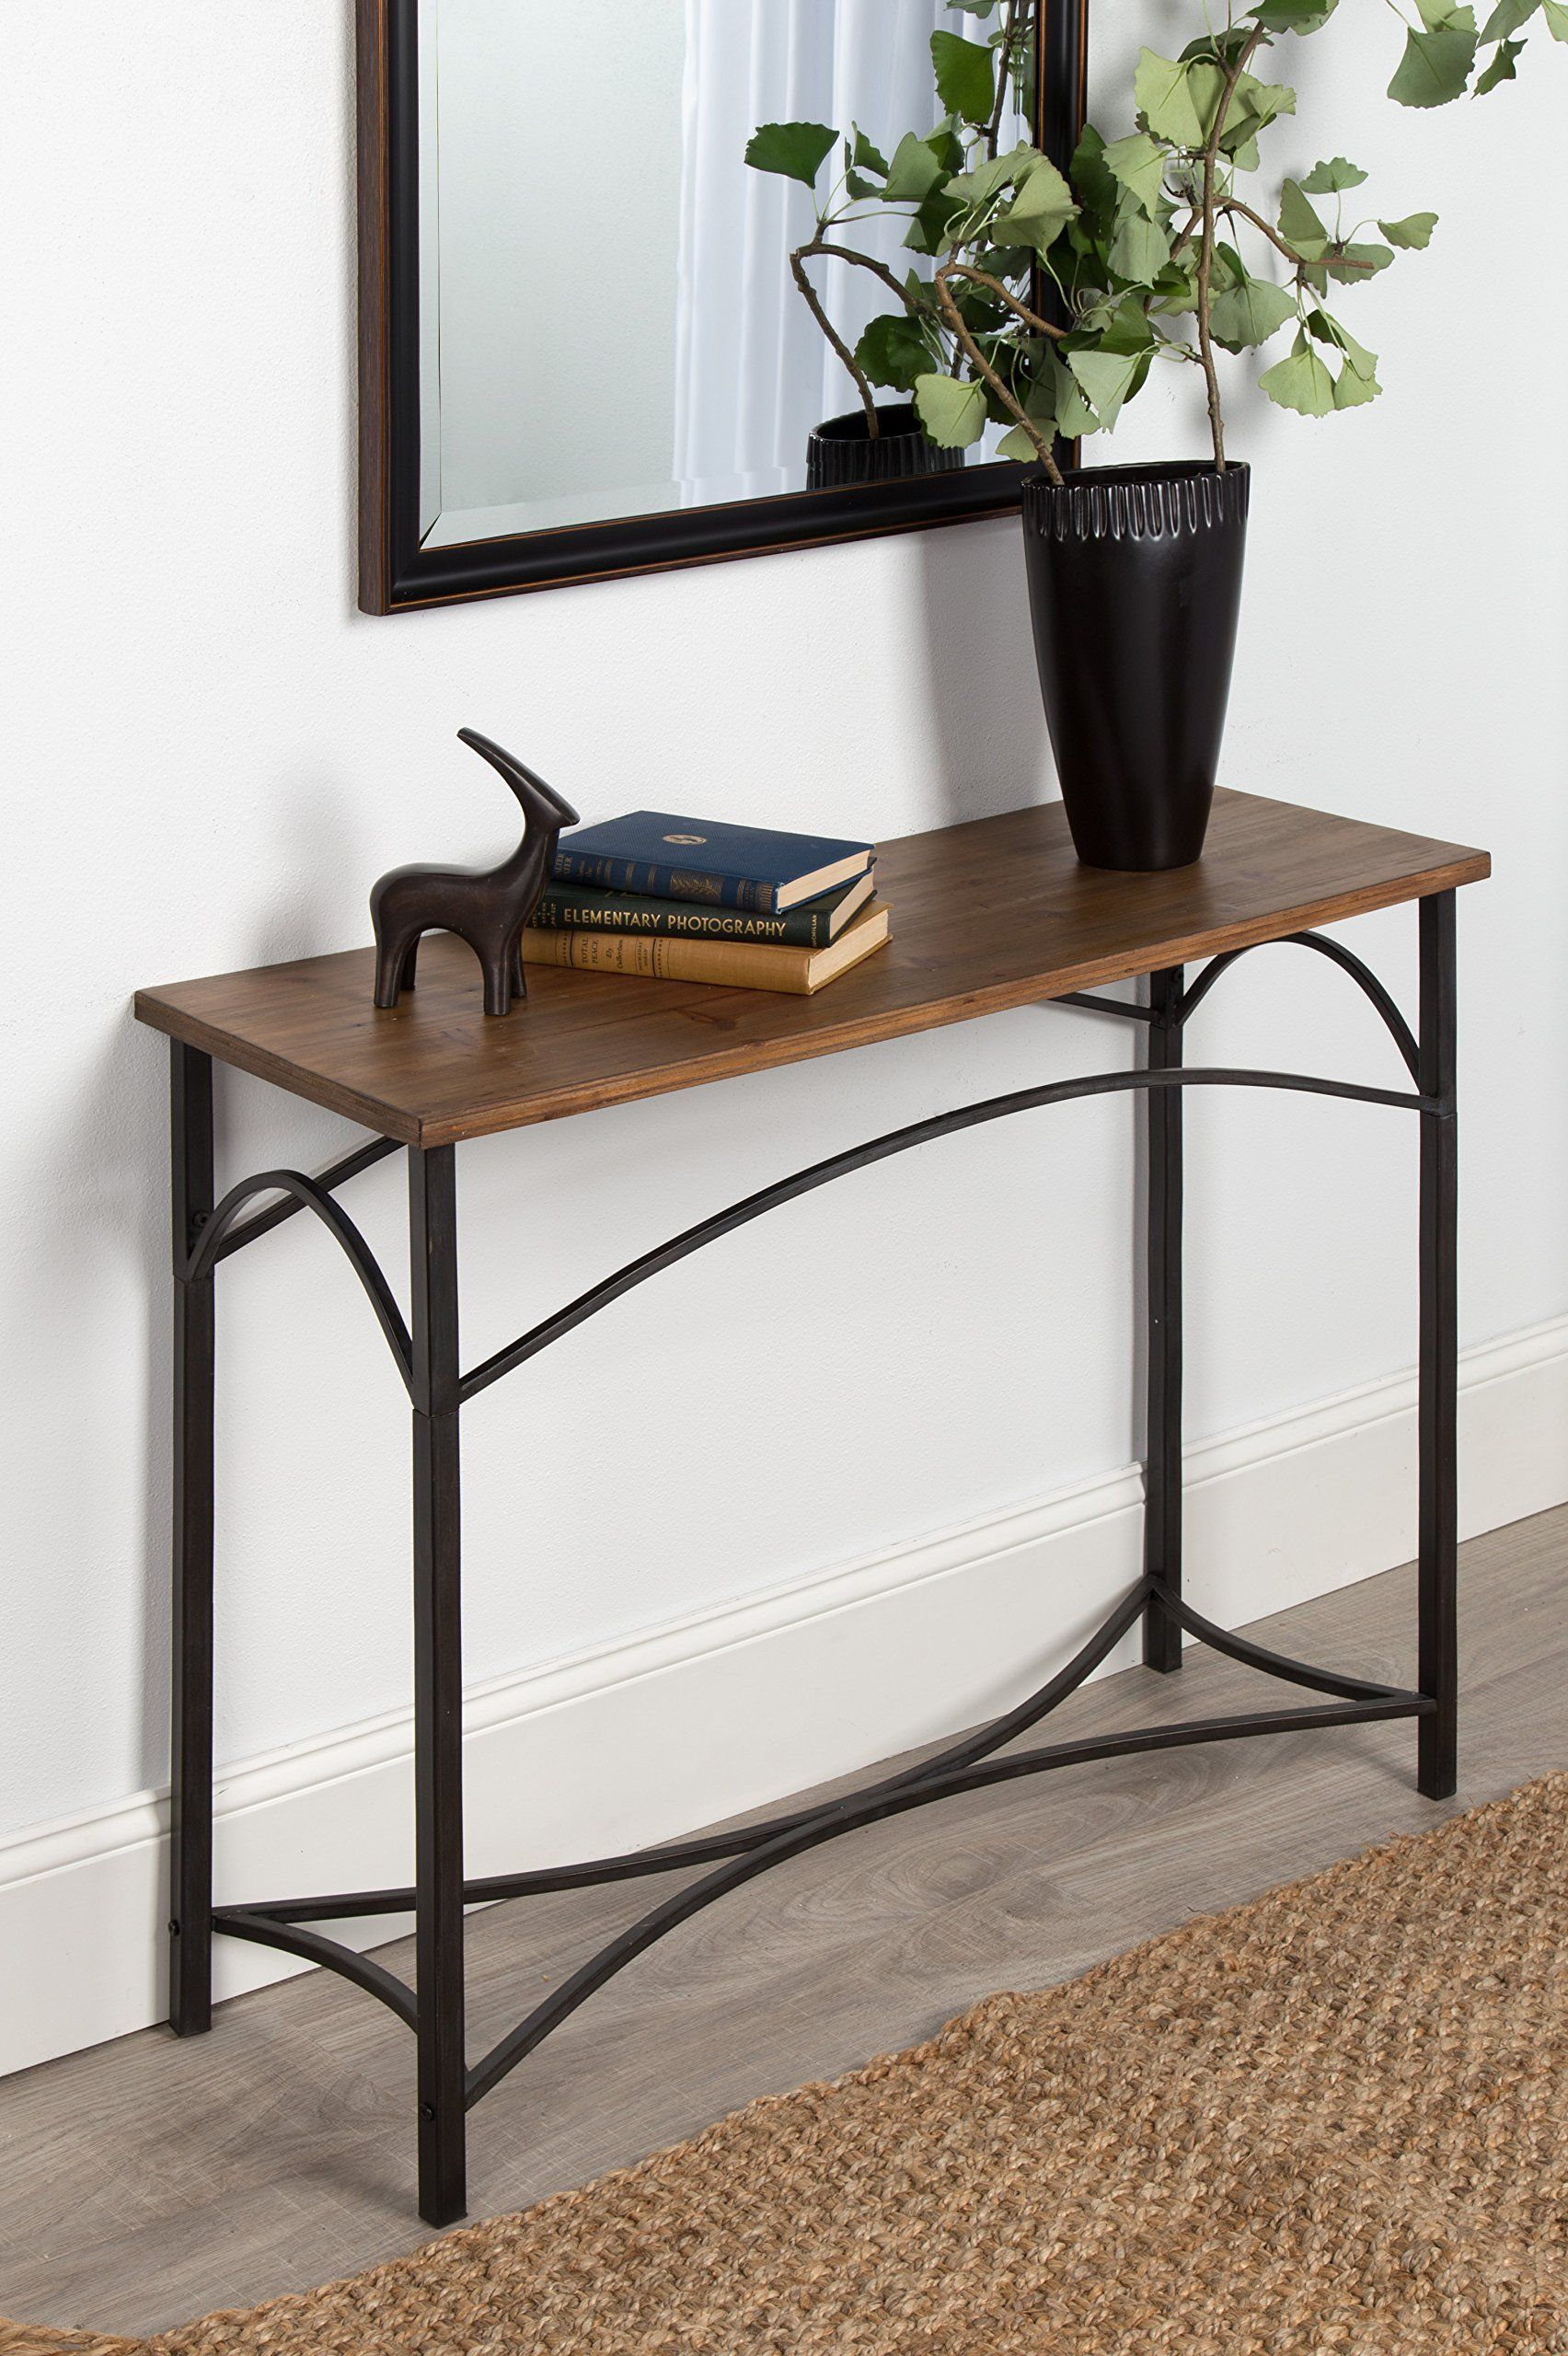 Kate and laurel strand console table rustic wood top with iron legs